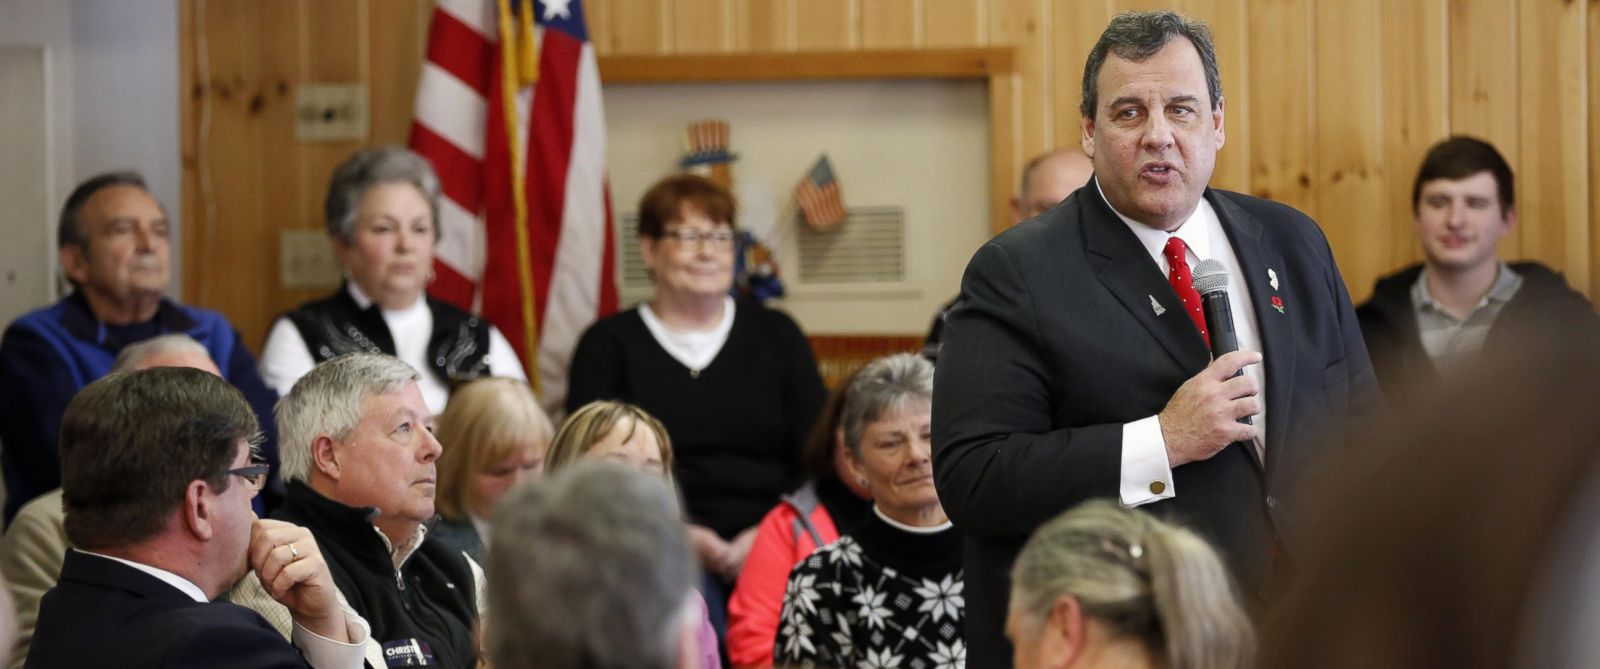 PHOTO: Republican presidential candidate N.J. Governor Chris Christie speaks during a campaign stop in Littleton, N.H. Jan. 22, 2016.